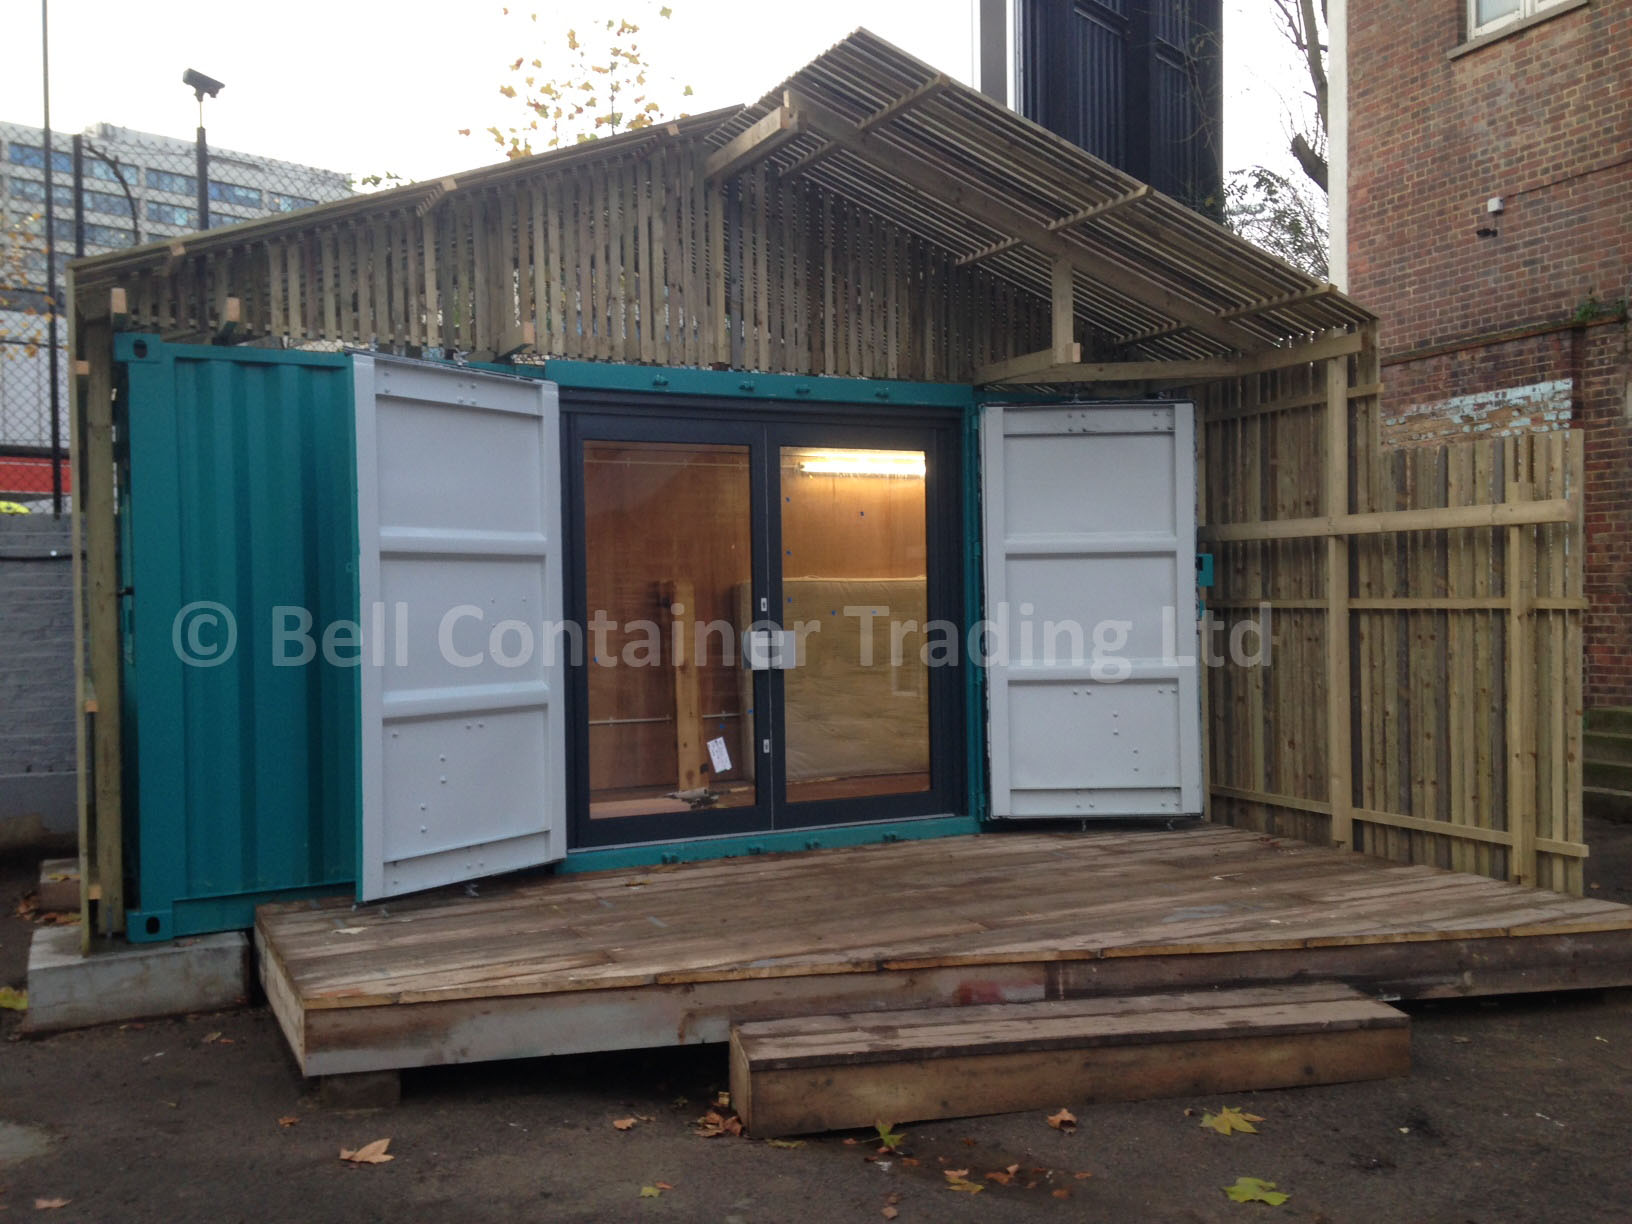 Shipping Container Shop For Use As Retail Stores Pop Up